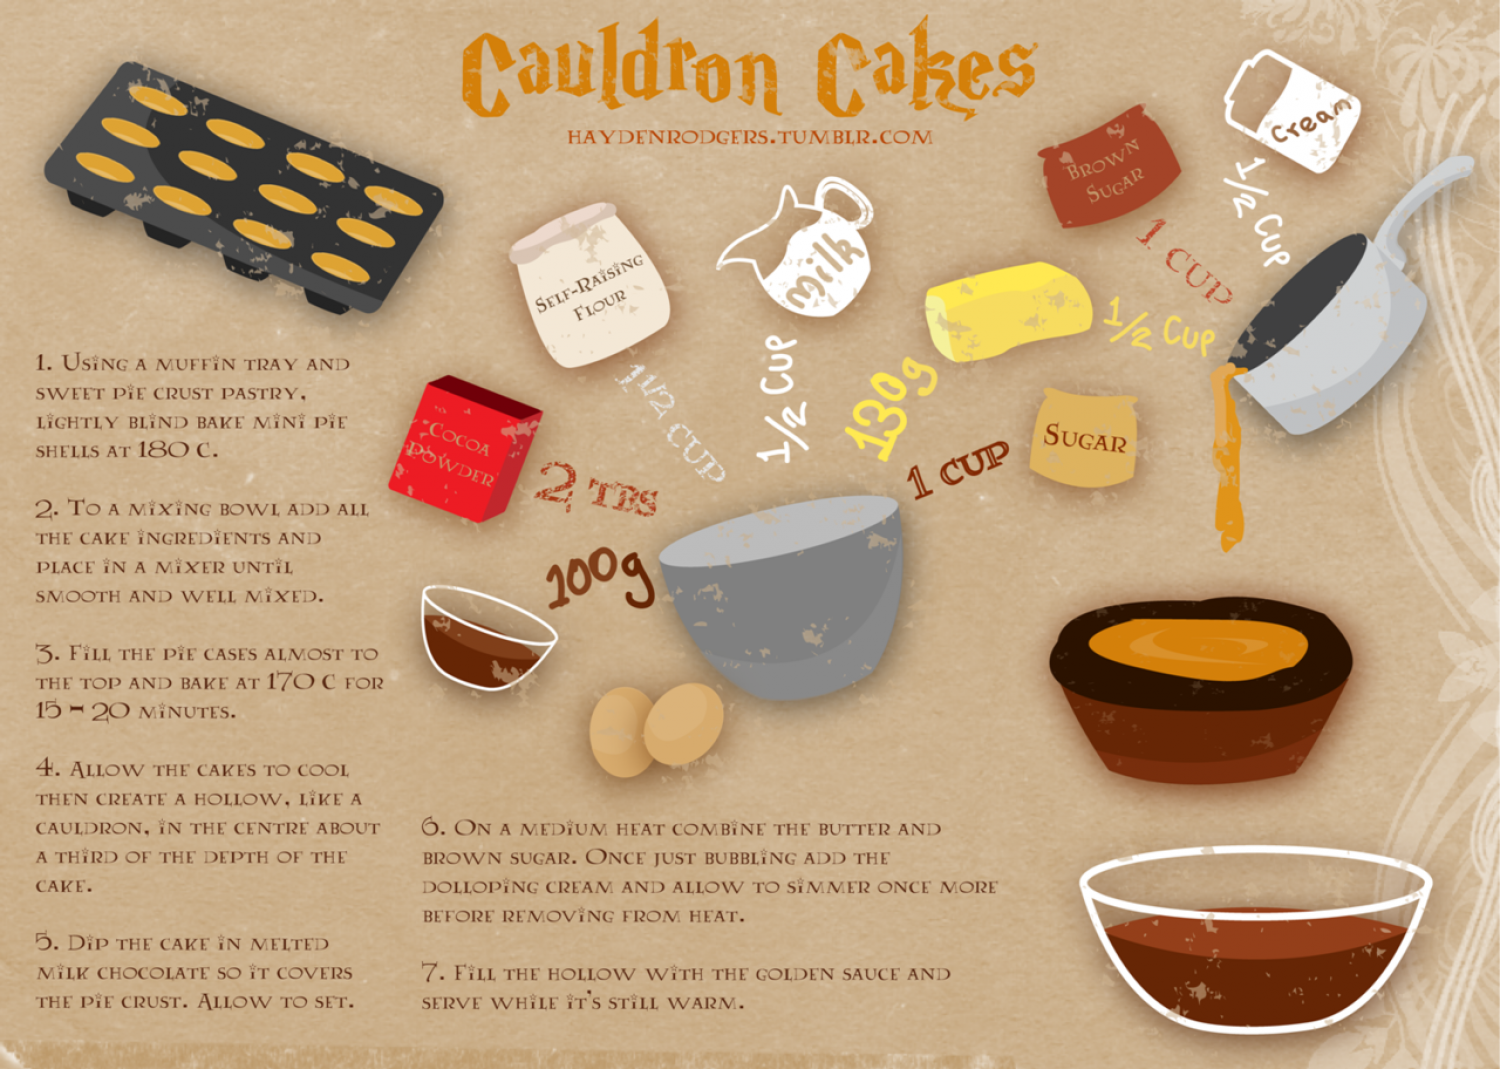 Cauldron Cakes Infographic